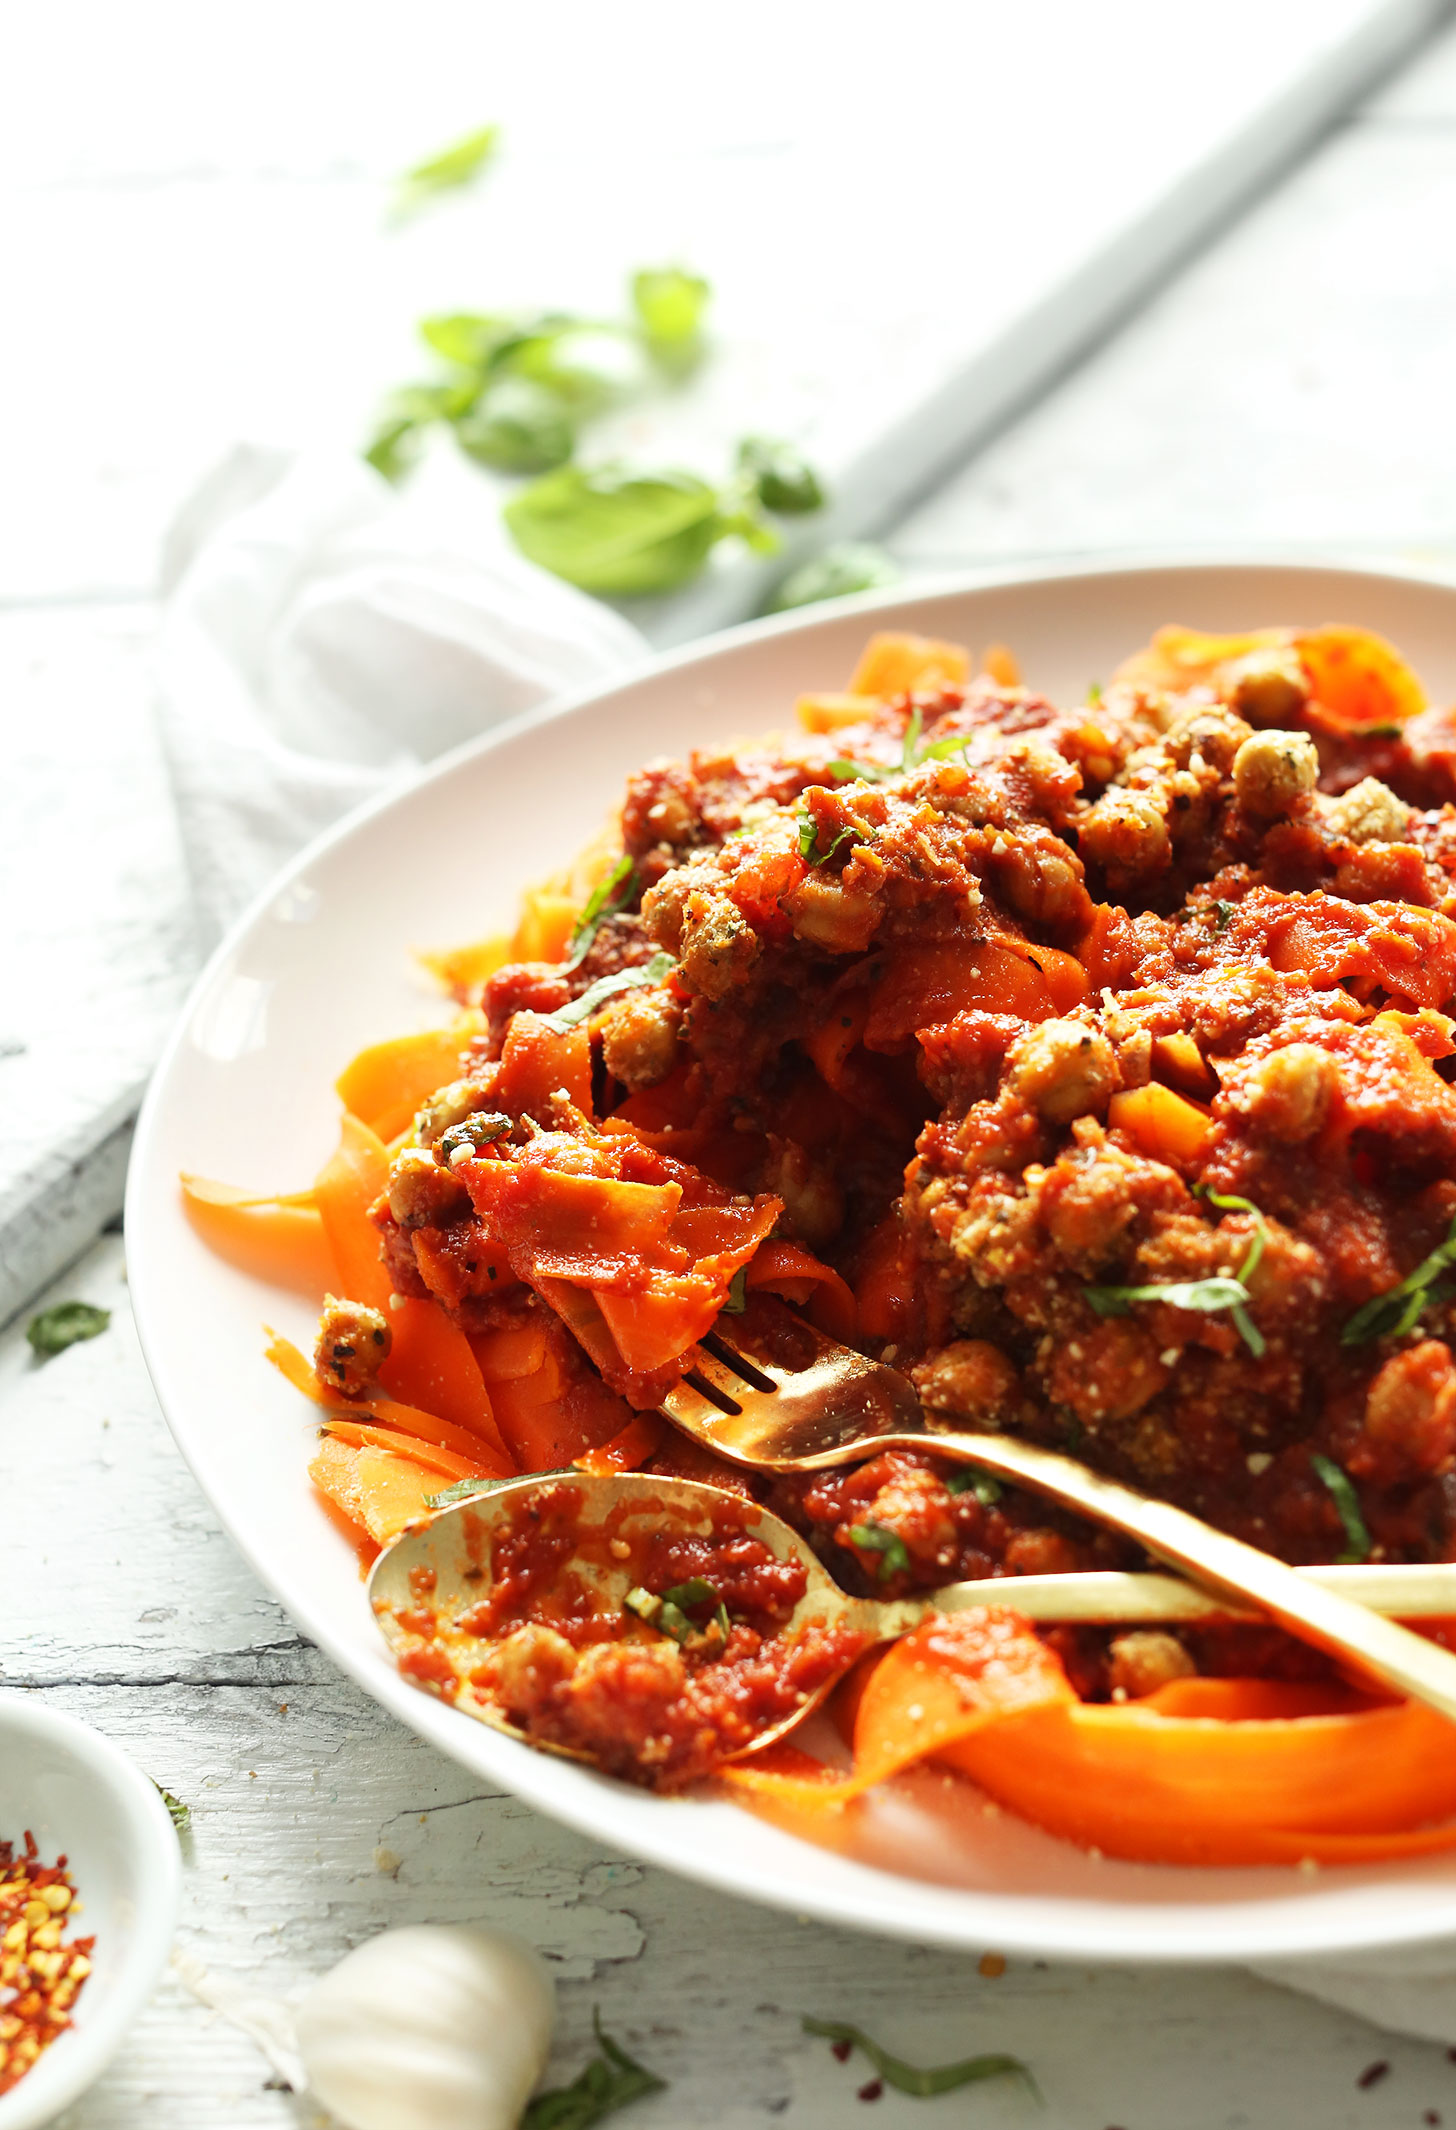 Big plate of our Chickpea Bolognese with Carrot Noodles for a gluten-free plant-based dinner